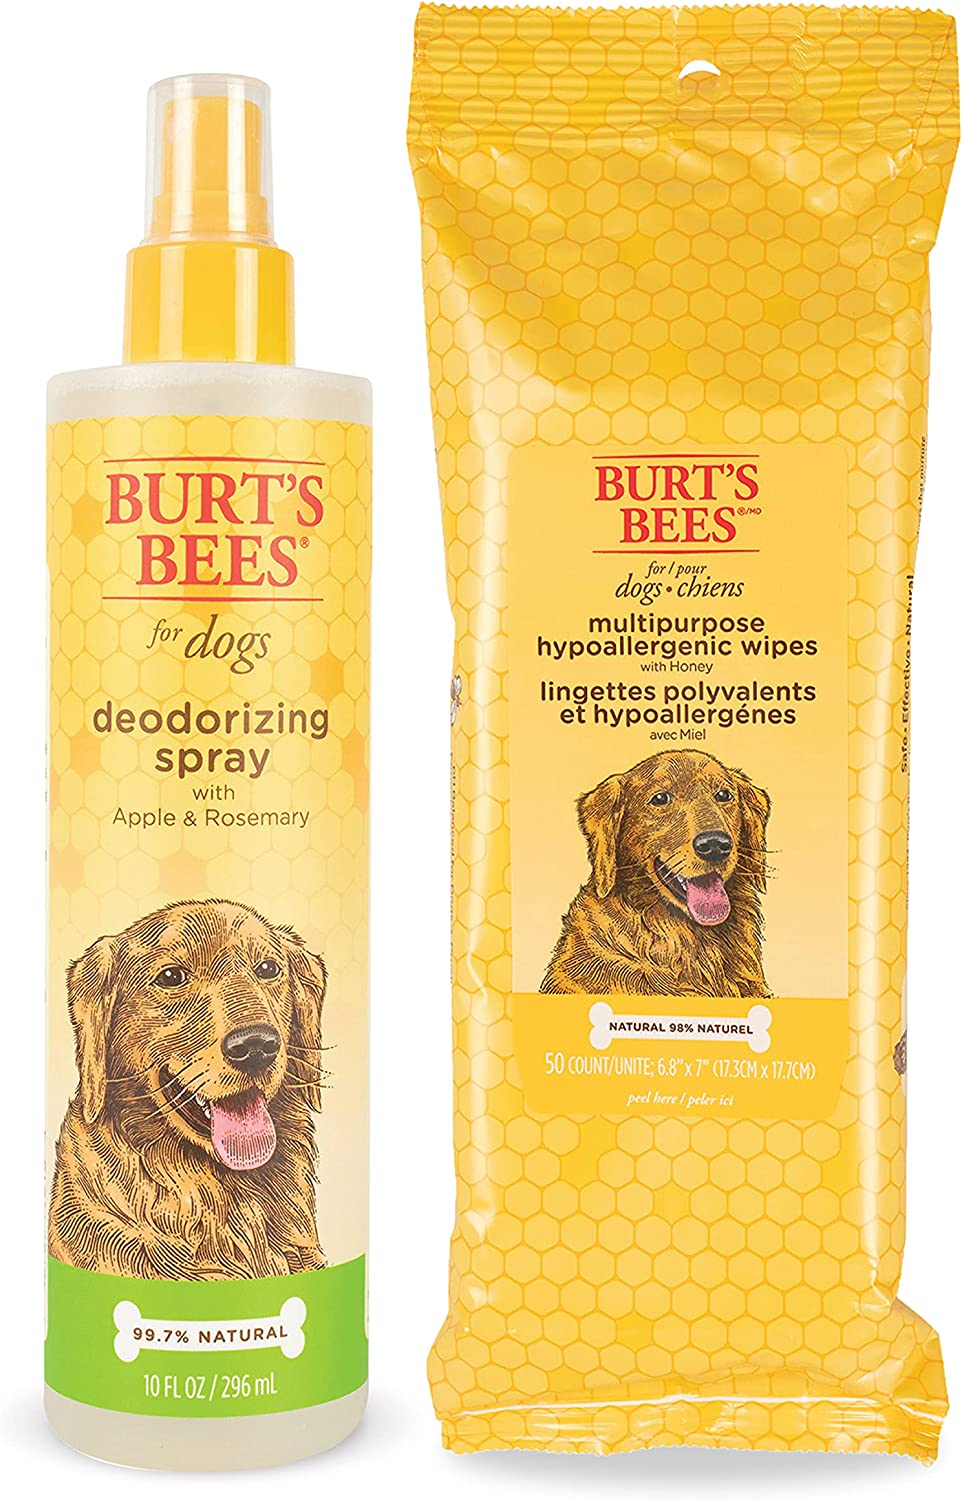 Burt's Bees For Dogs National uniform free shipping Hypoallergenic Wipes Multipurpose Grooming shopping